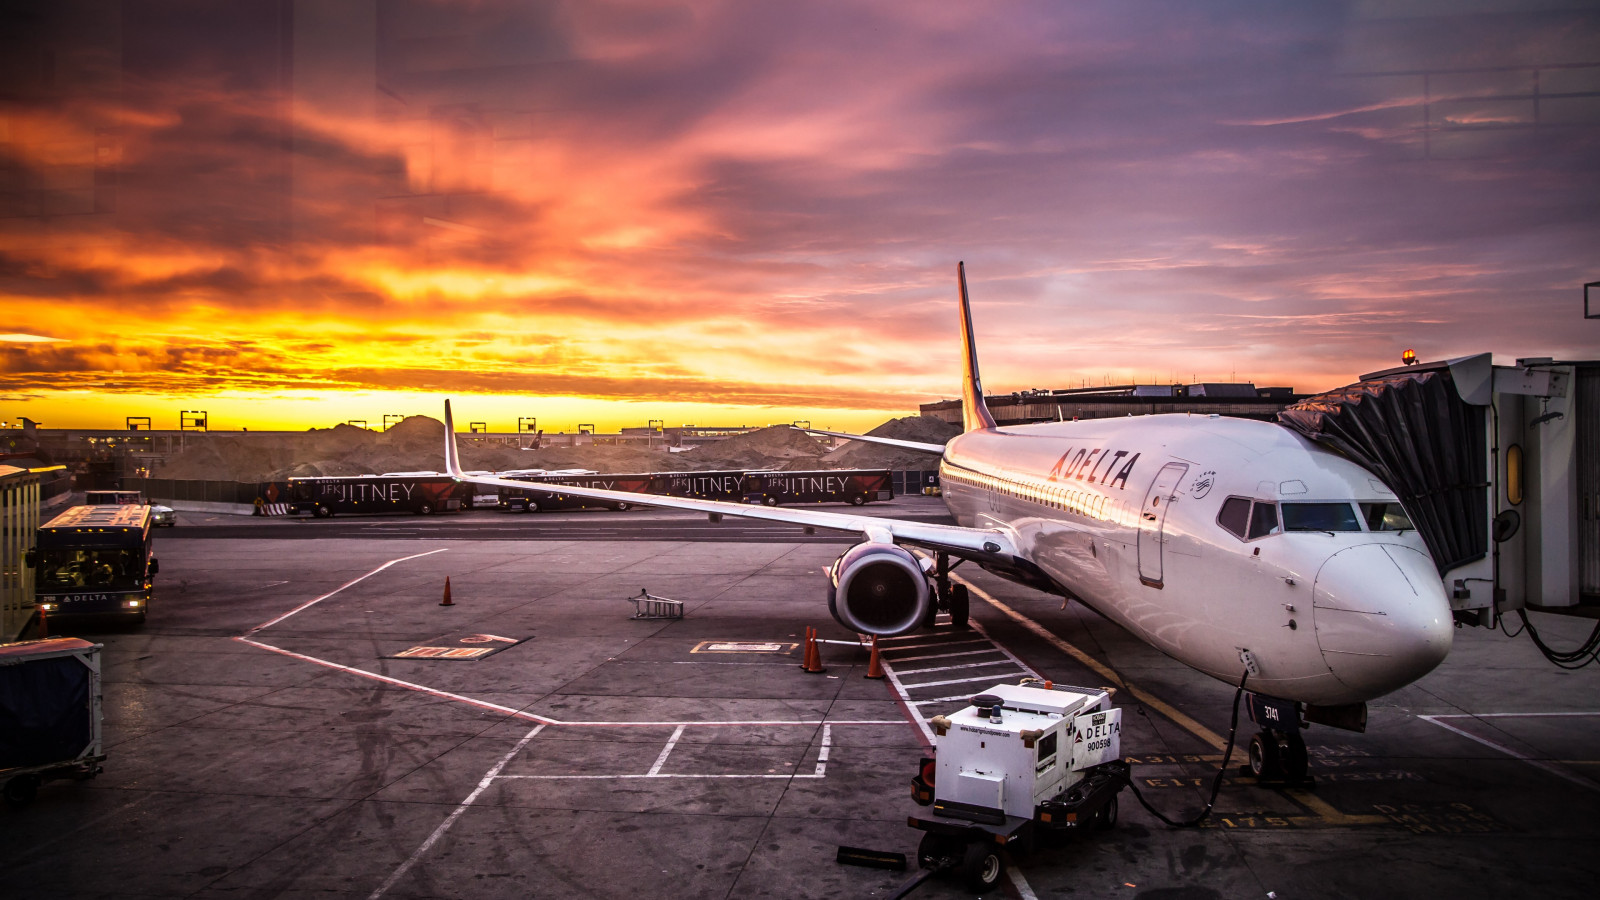 Delta Aircraft on JFK Airport wallpaper 1600x900